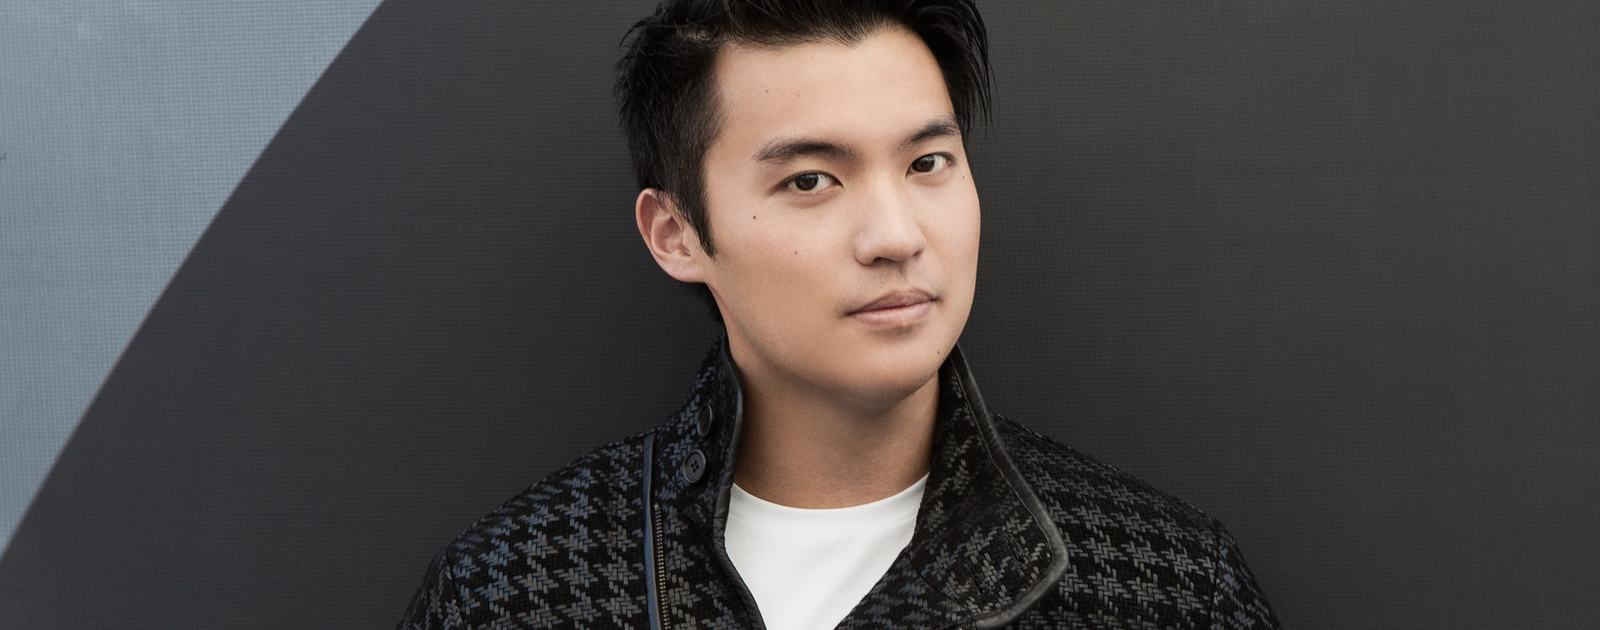 Violinist Ray Chen c Julian Hargreaves